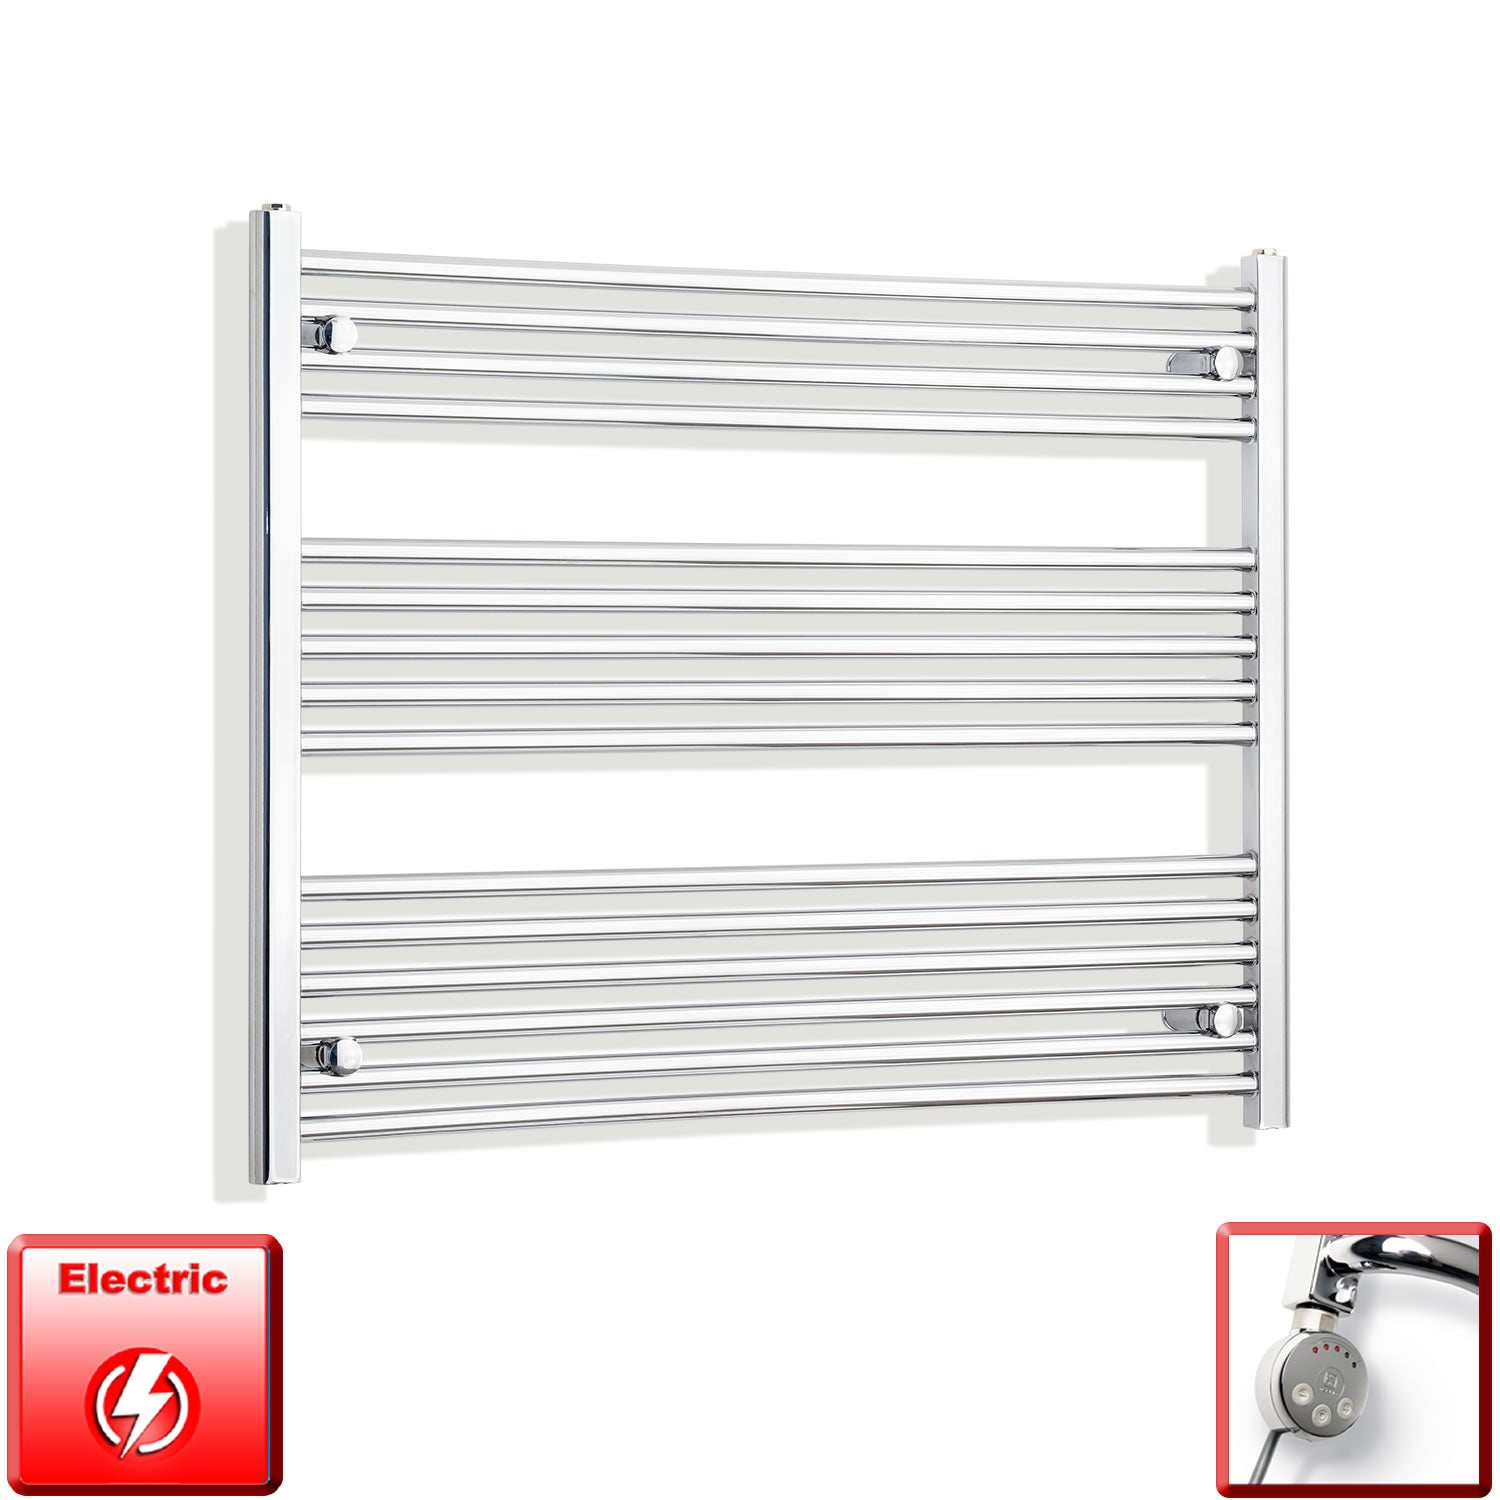 950mm Wide 800mm High Pre-Filled Chrome Electric Towel Rail Radiator With Thermostatic MEG Element